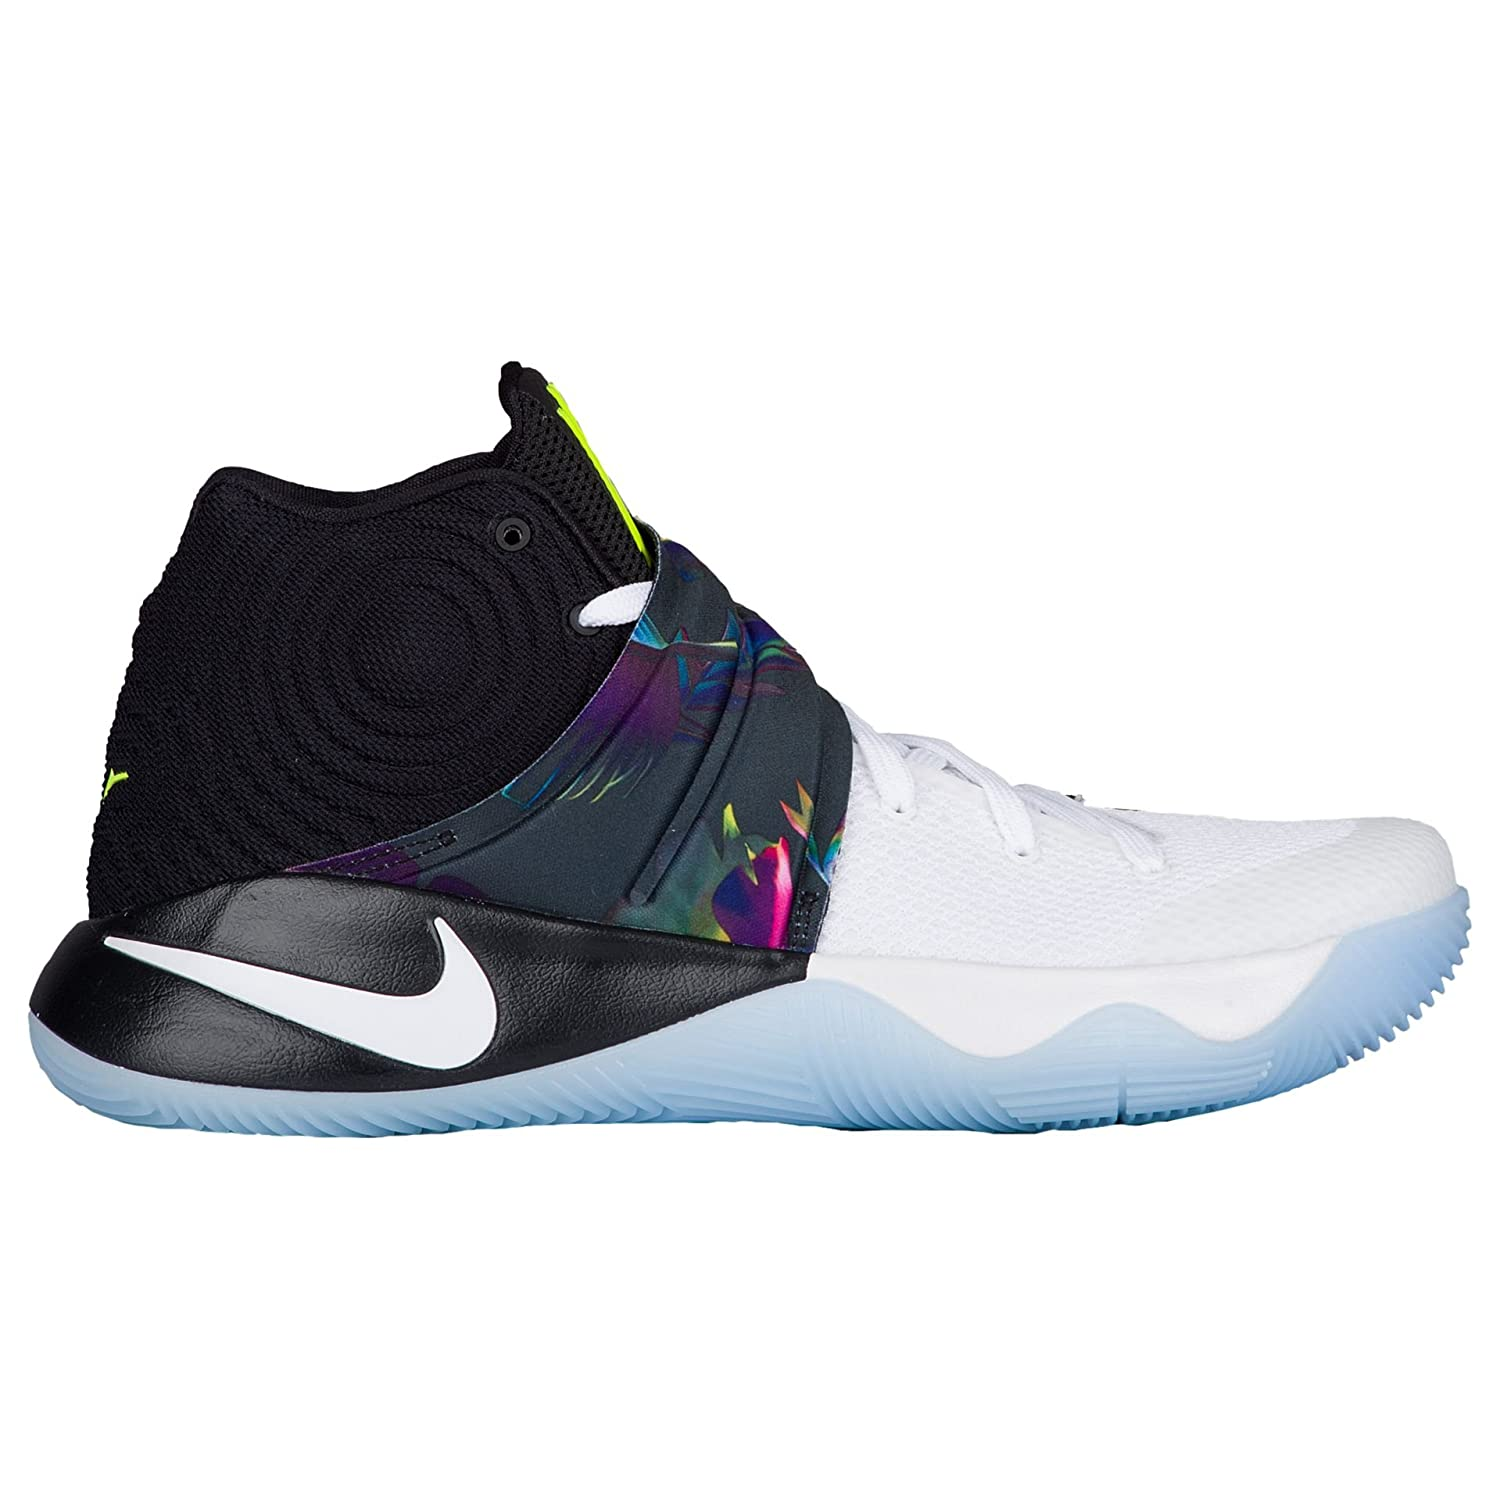 new arrival bbce2 6a7bf Nike Kyrie 2 Basketball Shoes (15 D(M) US)